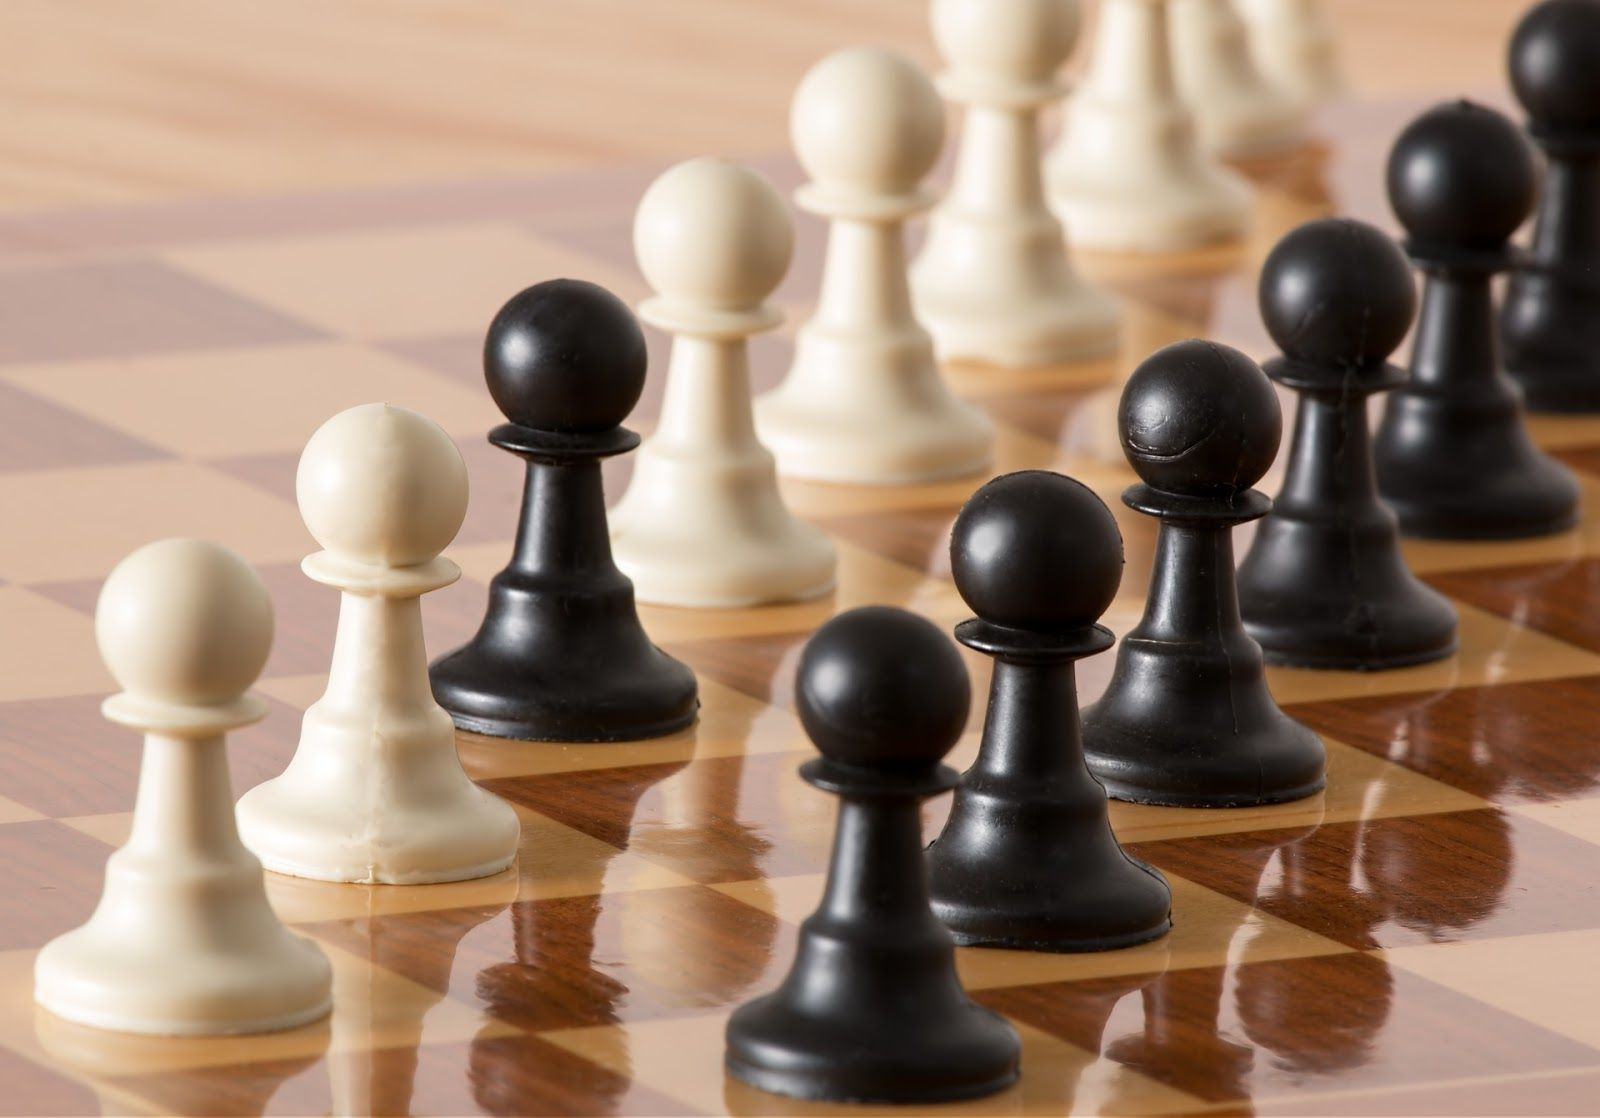 Chessboard and pieces